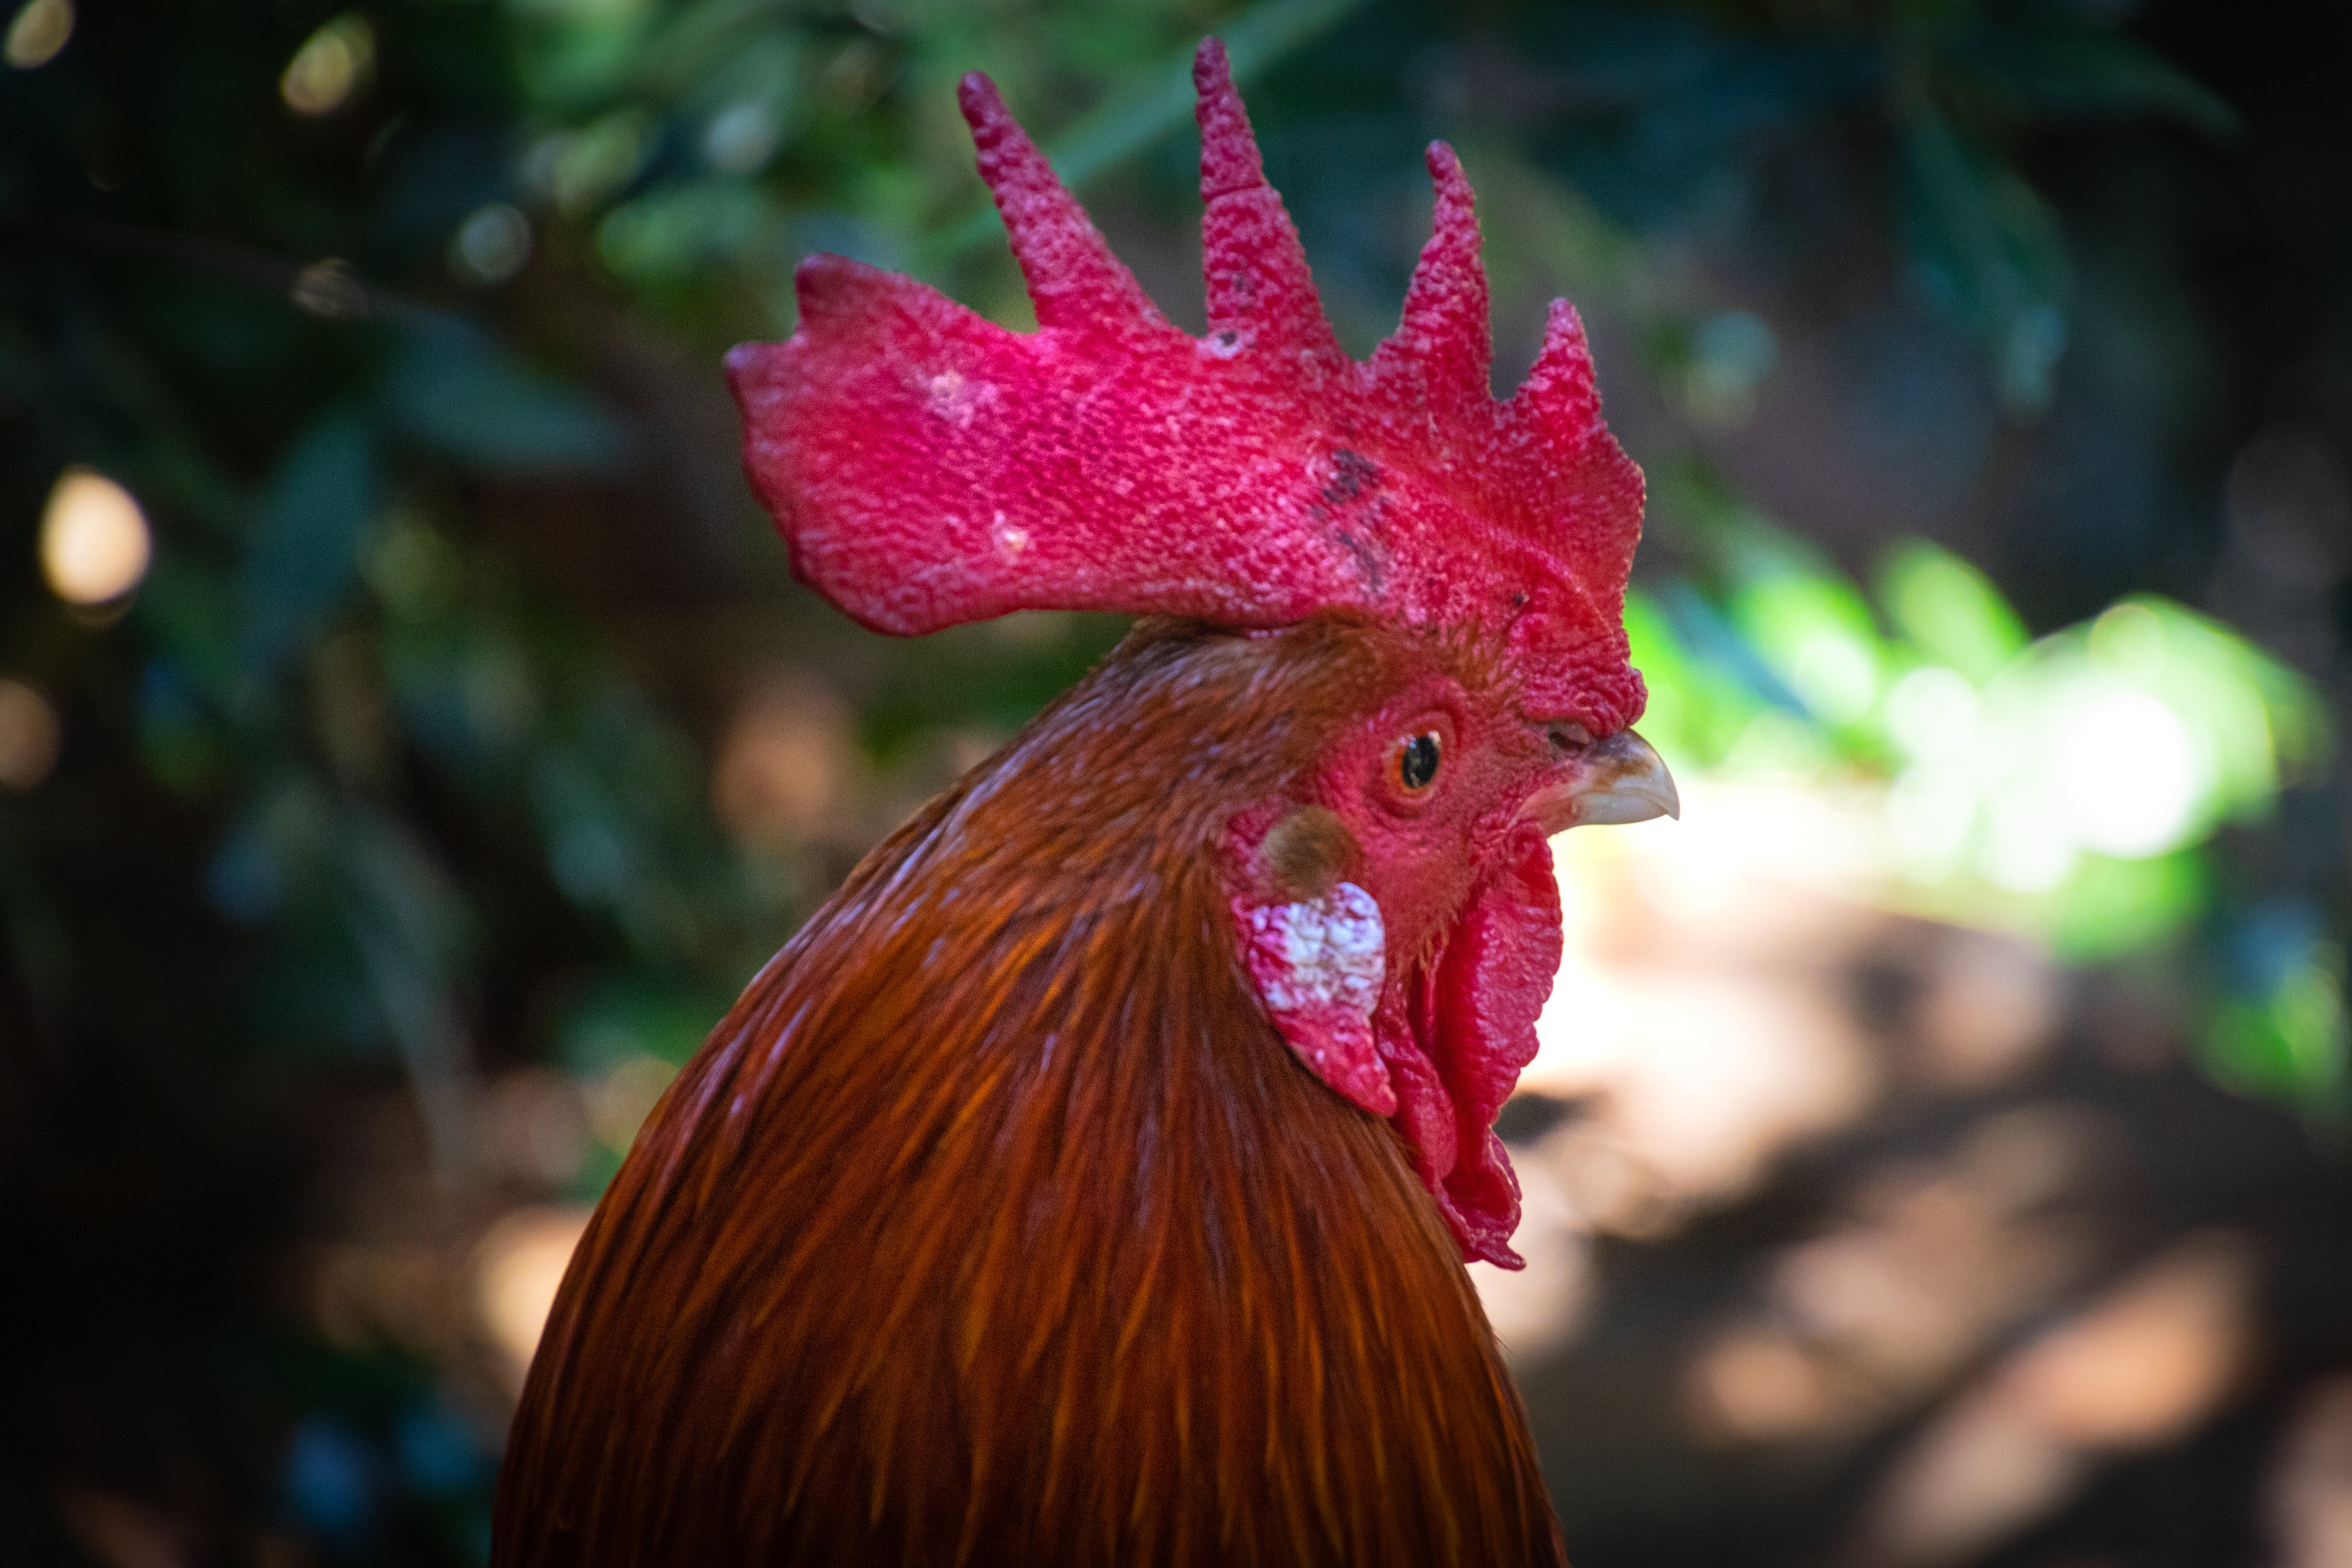 Red Rooster in Focus Photography